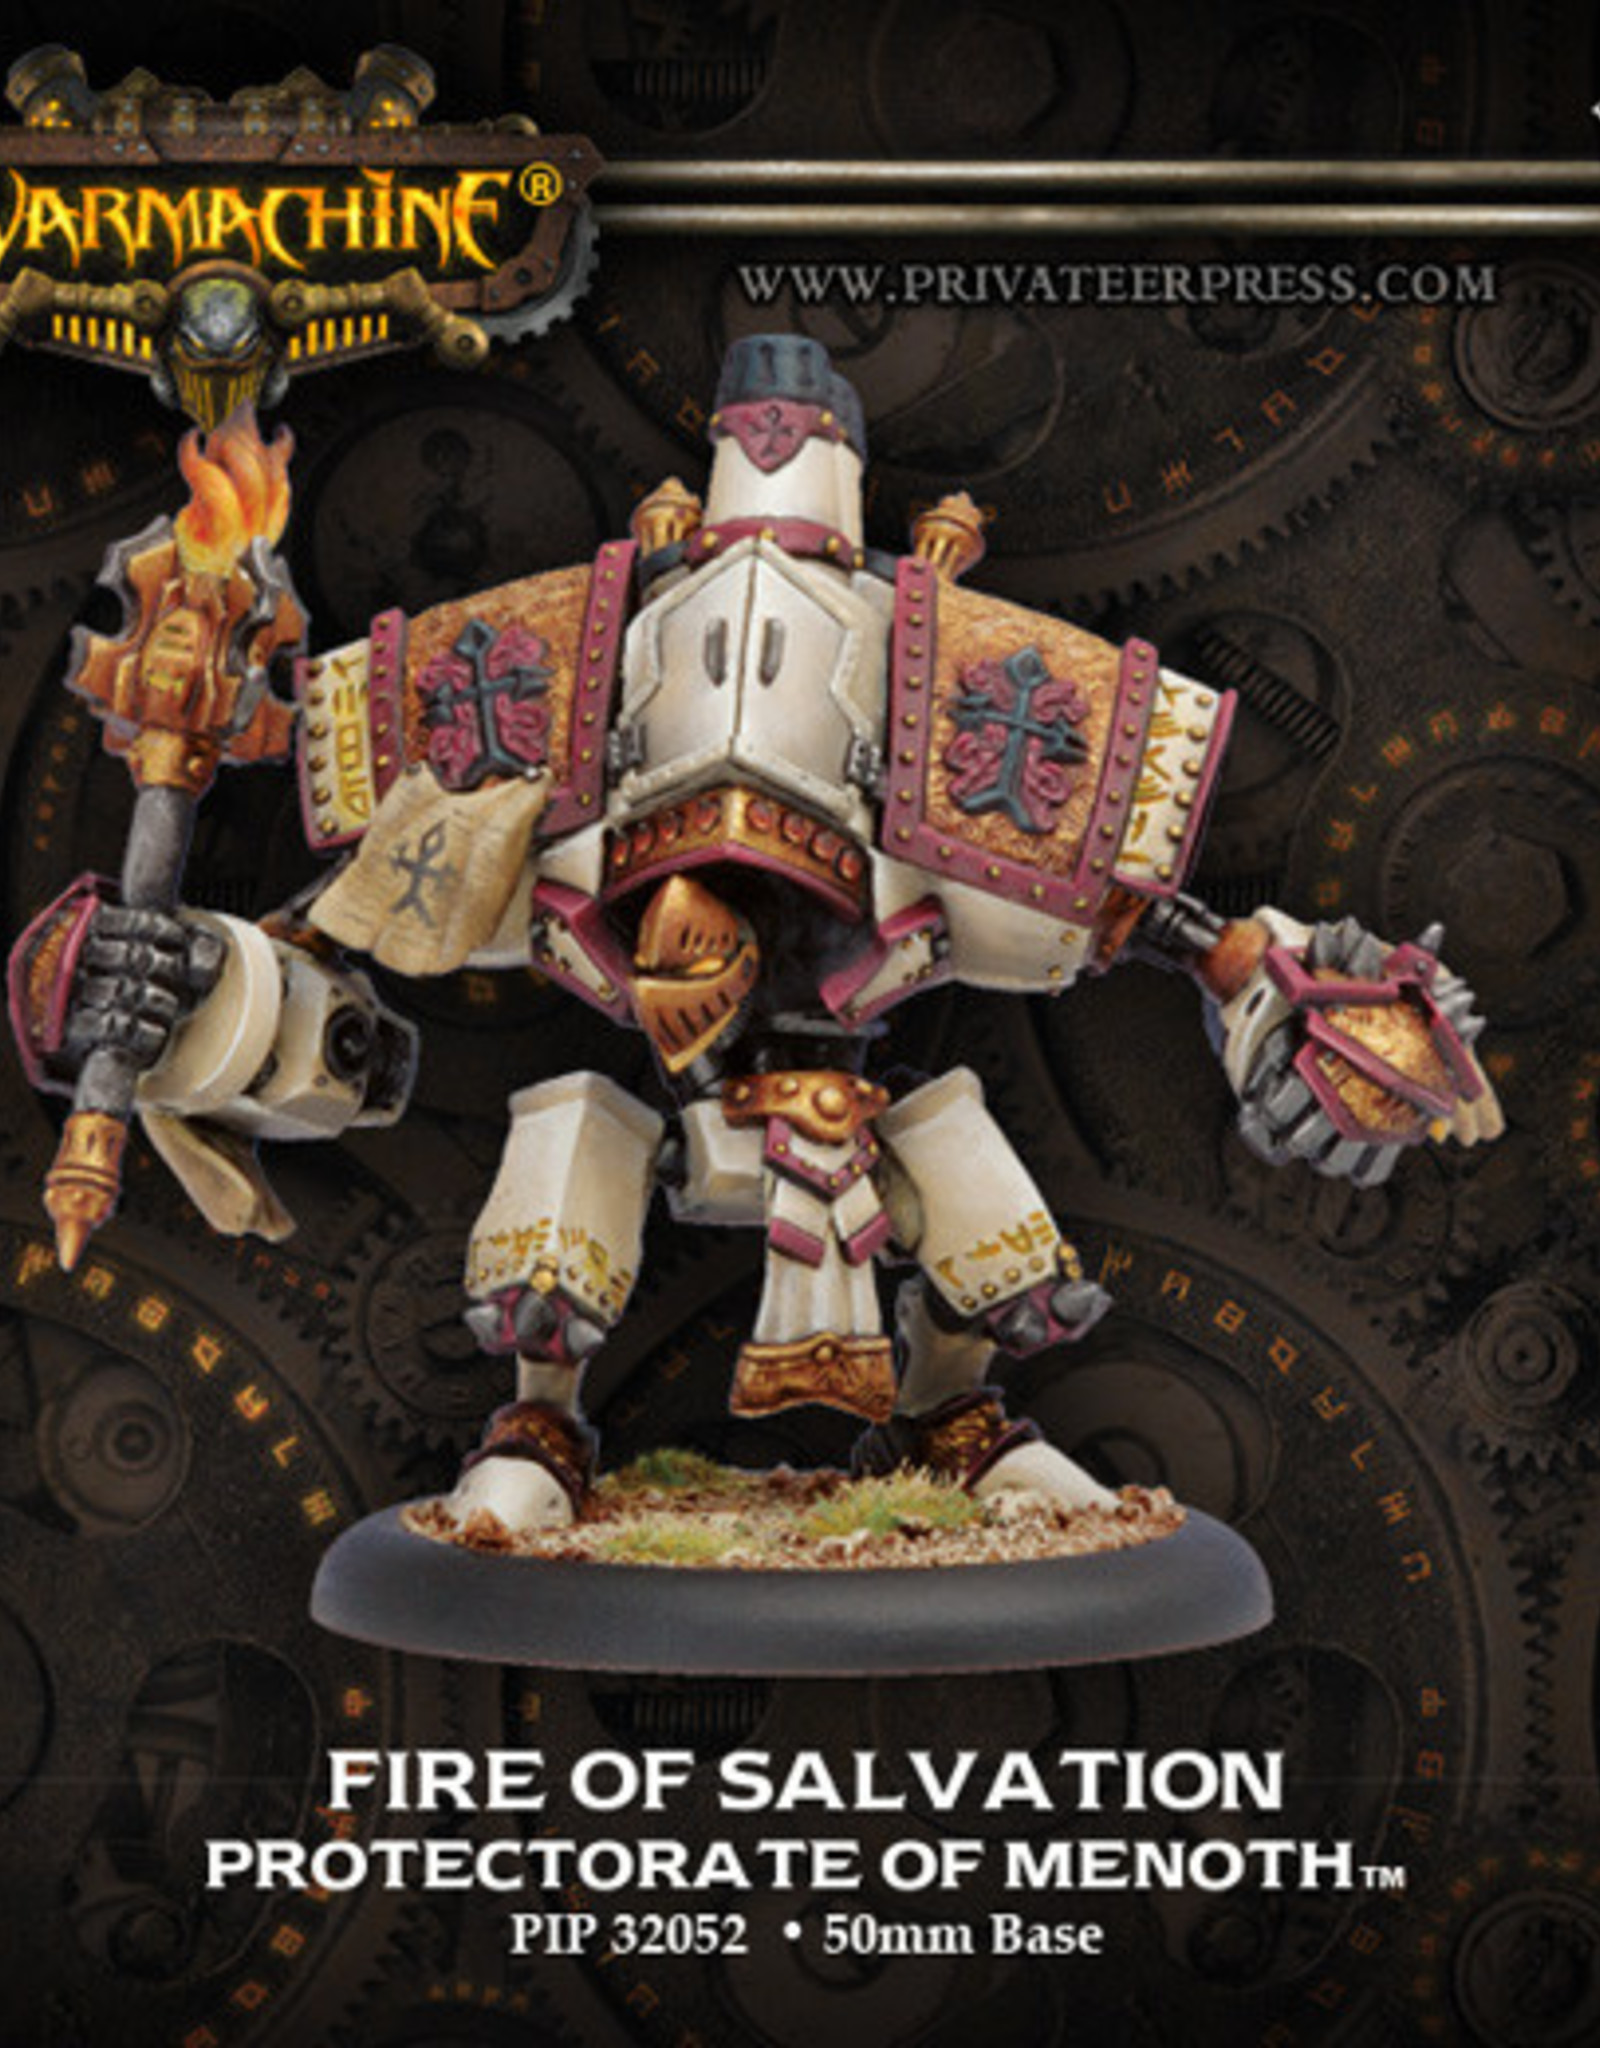 Warmachine Protectorate - Fire of Salvation